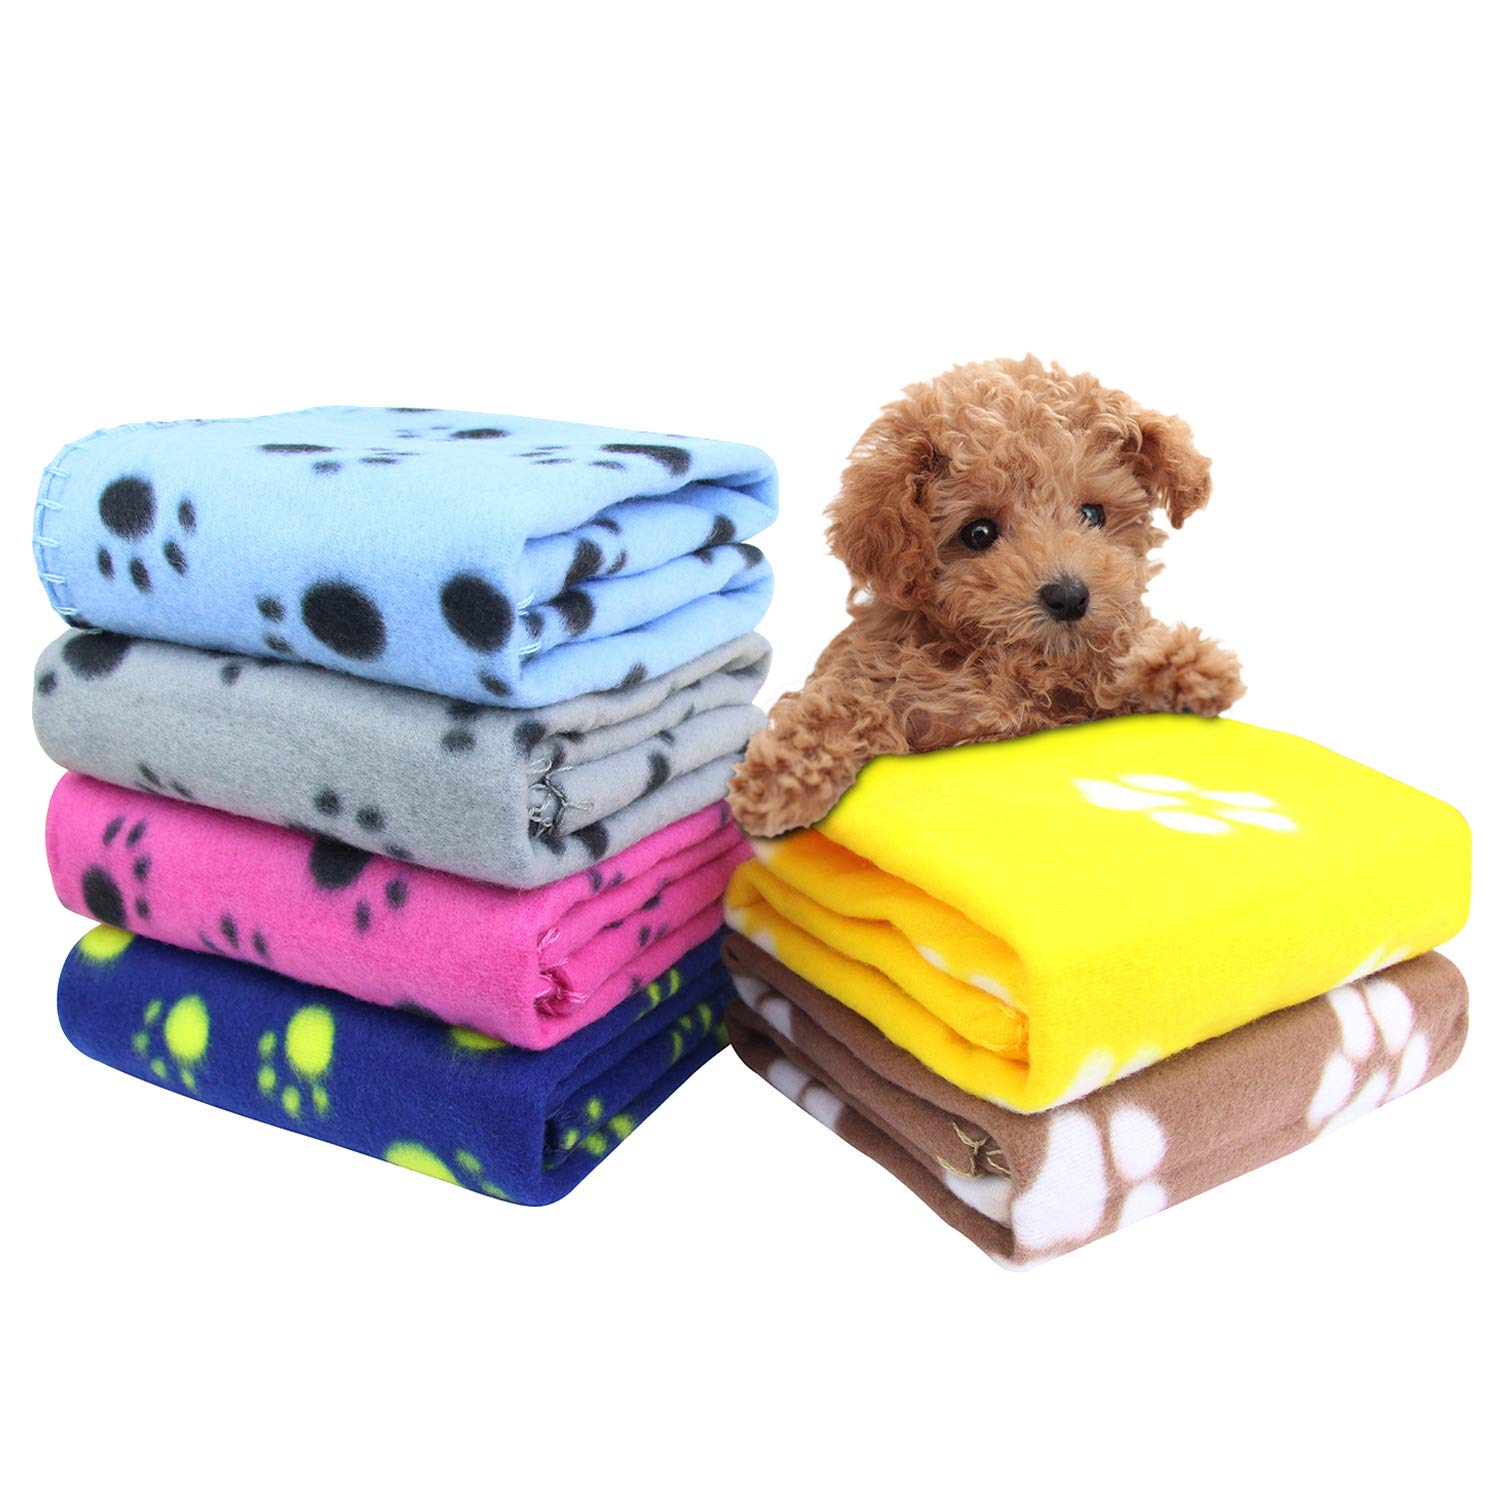 AK KYC 6 pack Mixed Puppy Blanket Cushion Dog Cat Fleece Blankets Pet Sleep Mat Pad Bed Cover with Paw Print Kitten Soft Warm Blanket for Animals